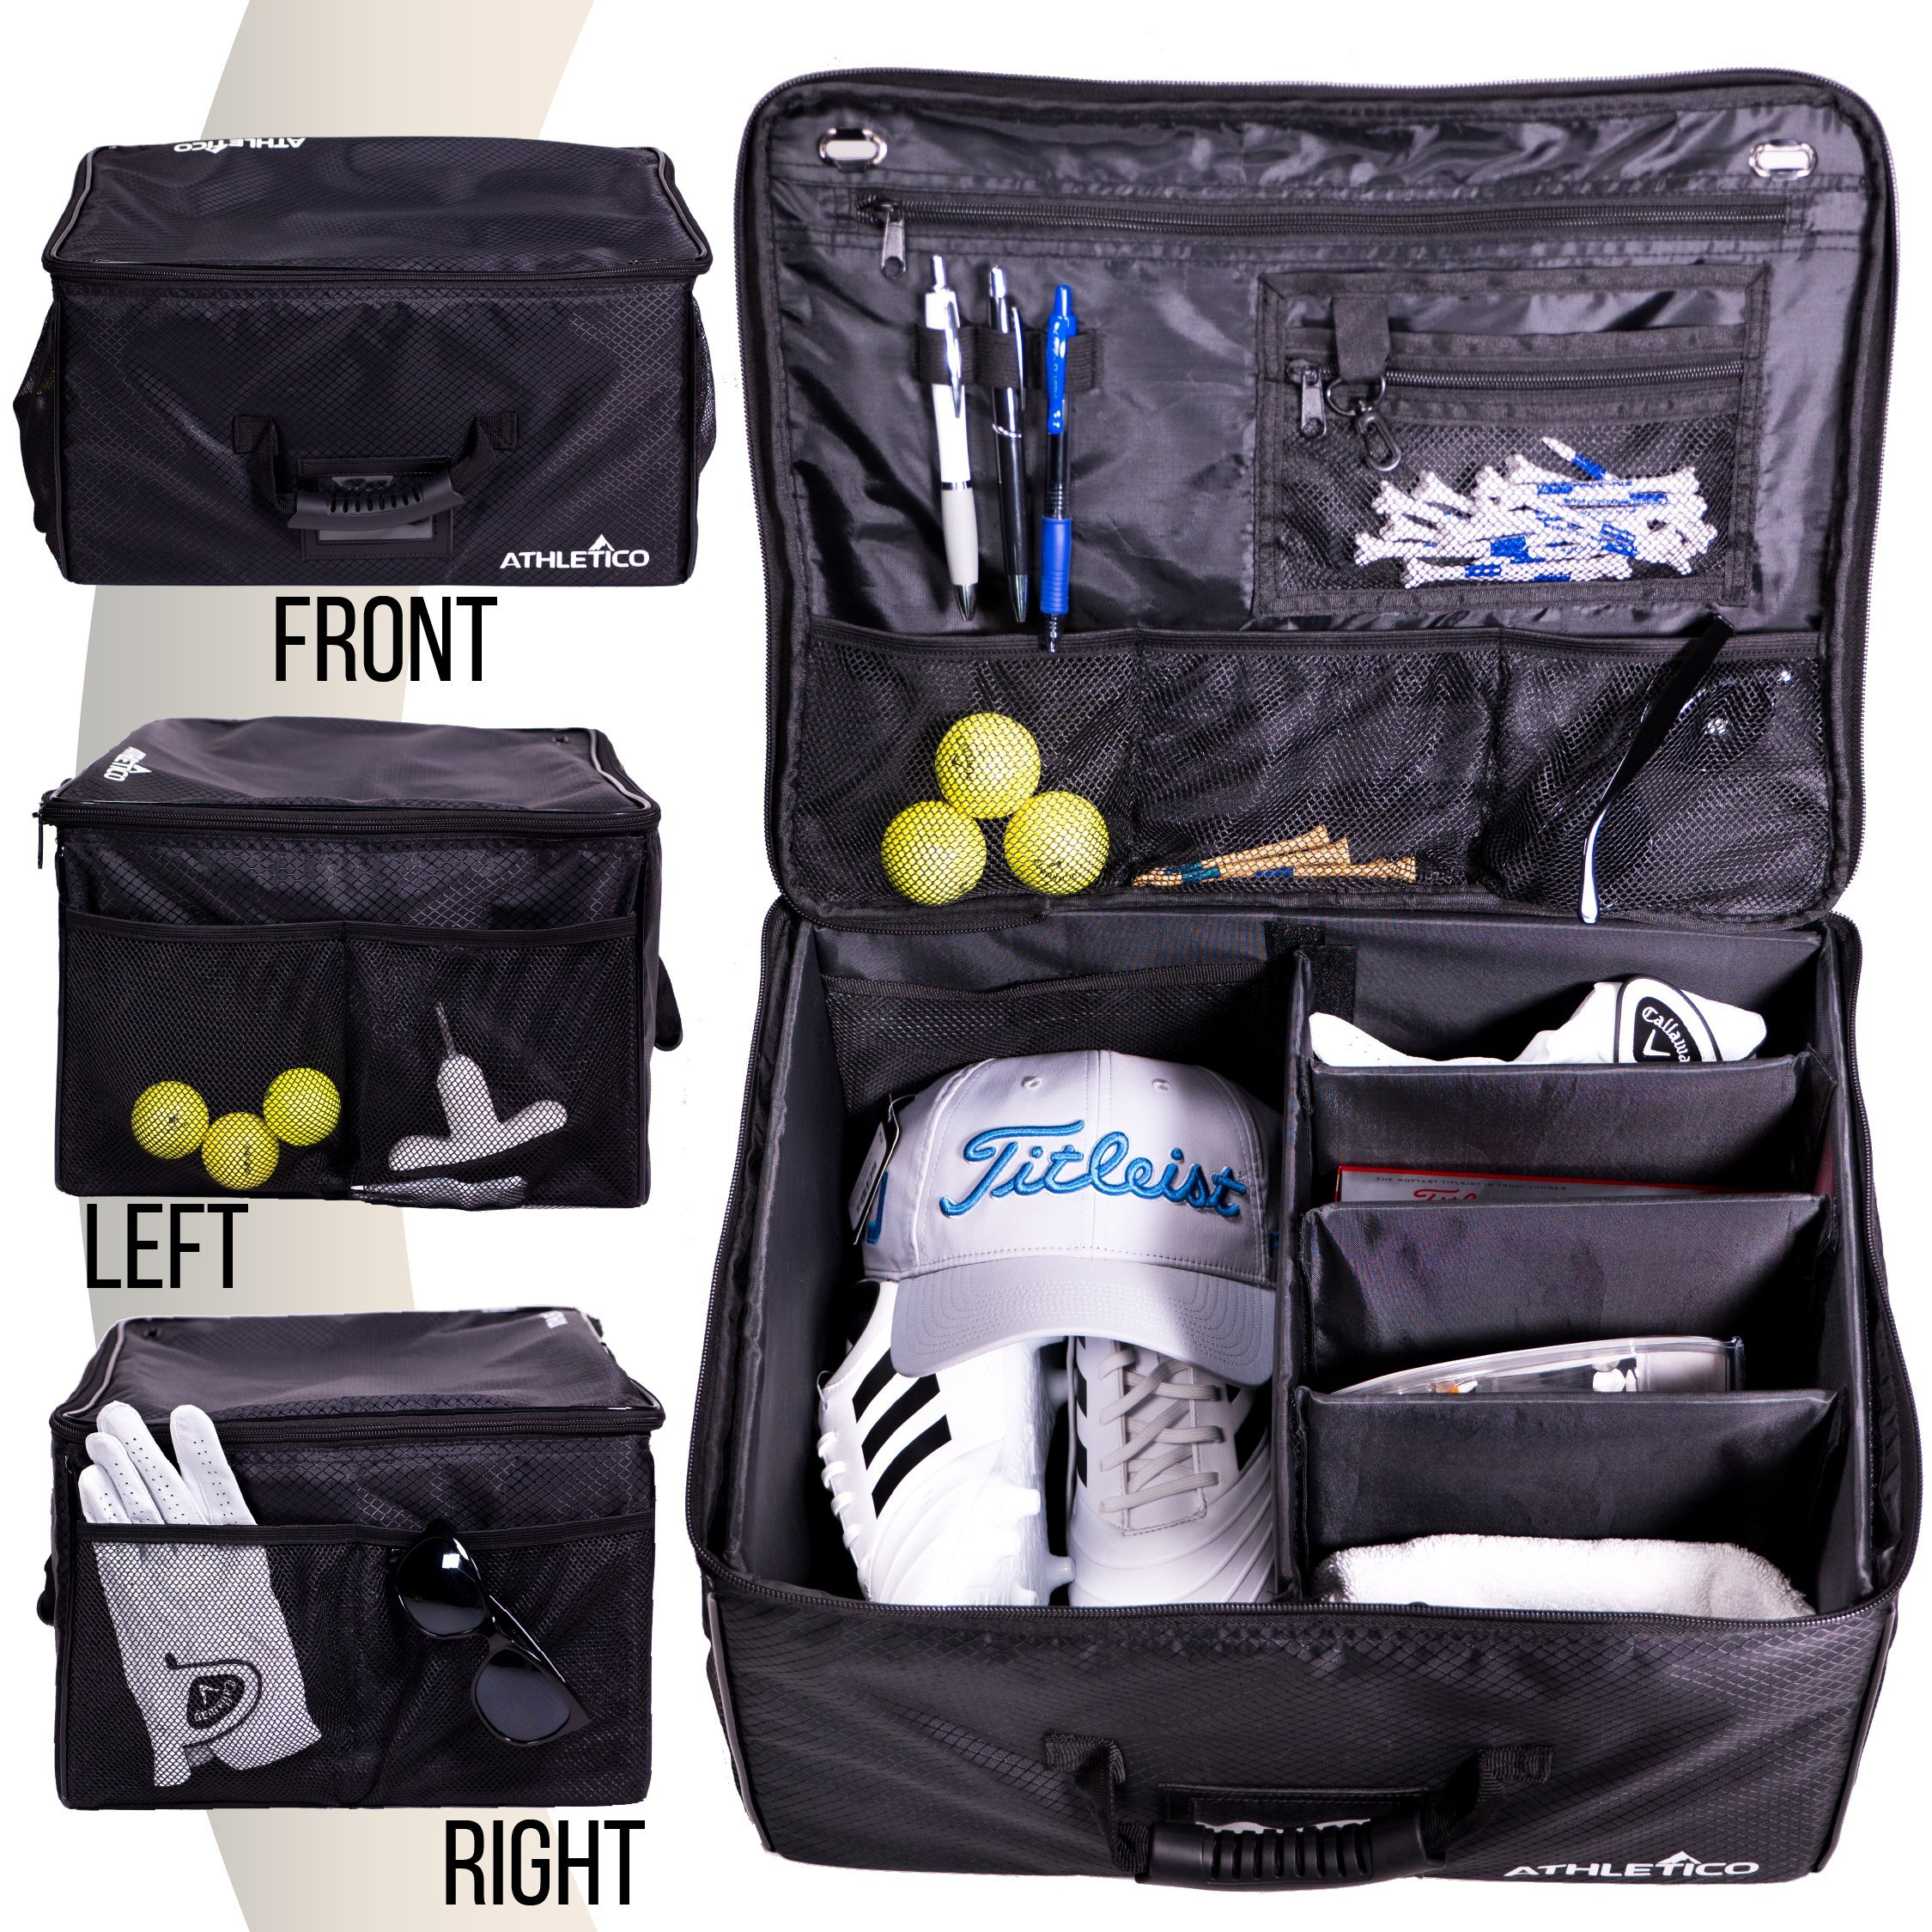 Athletico Golf Trunk Organizer Storage - Car Golf Locker to Store Golf Accessories | Collapsible When Not in Use by Athletico